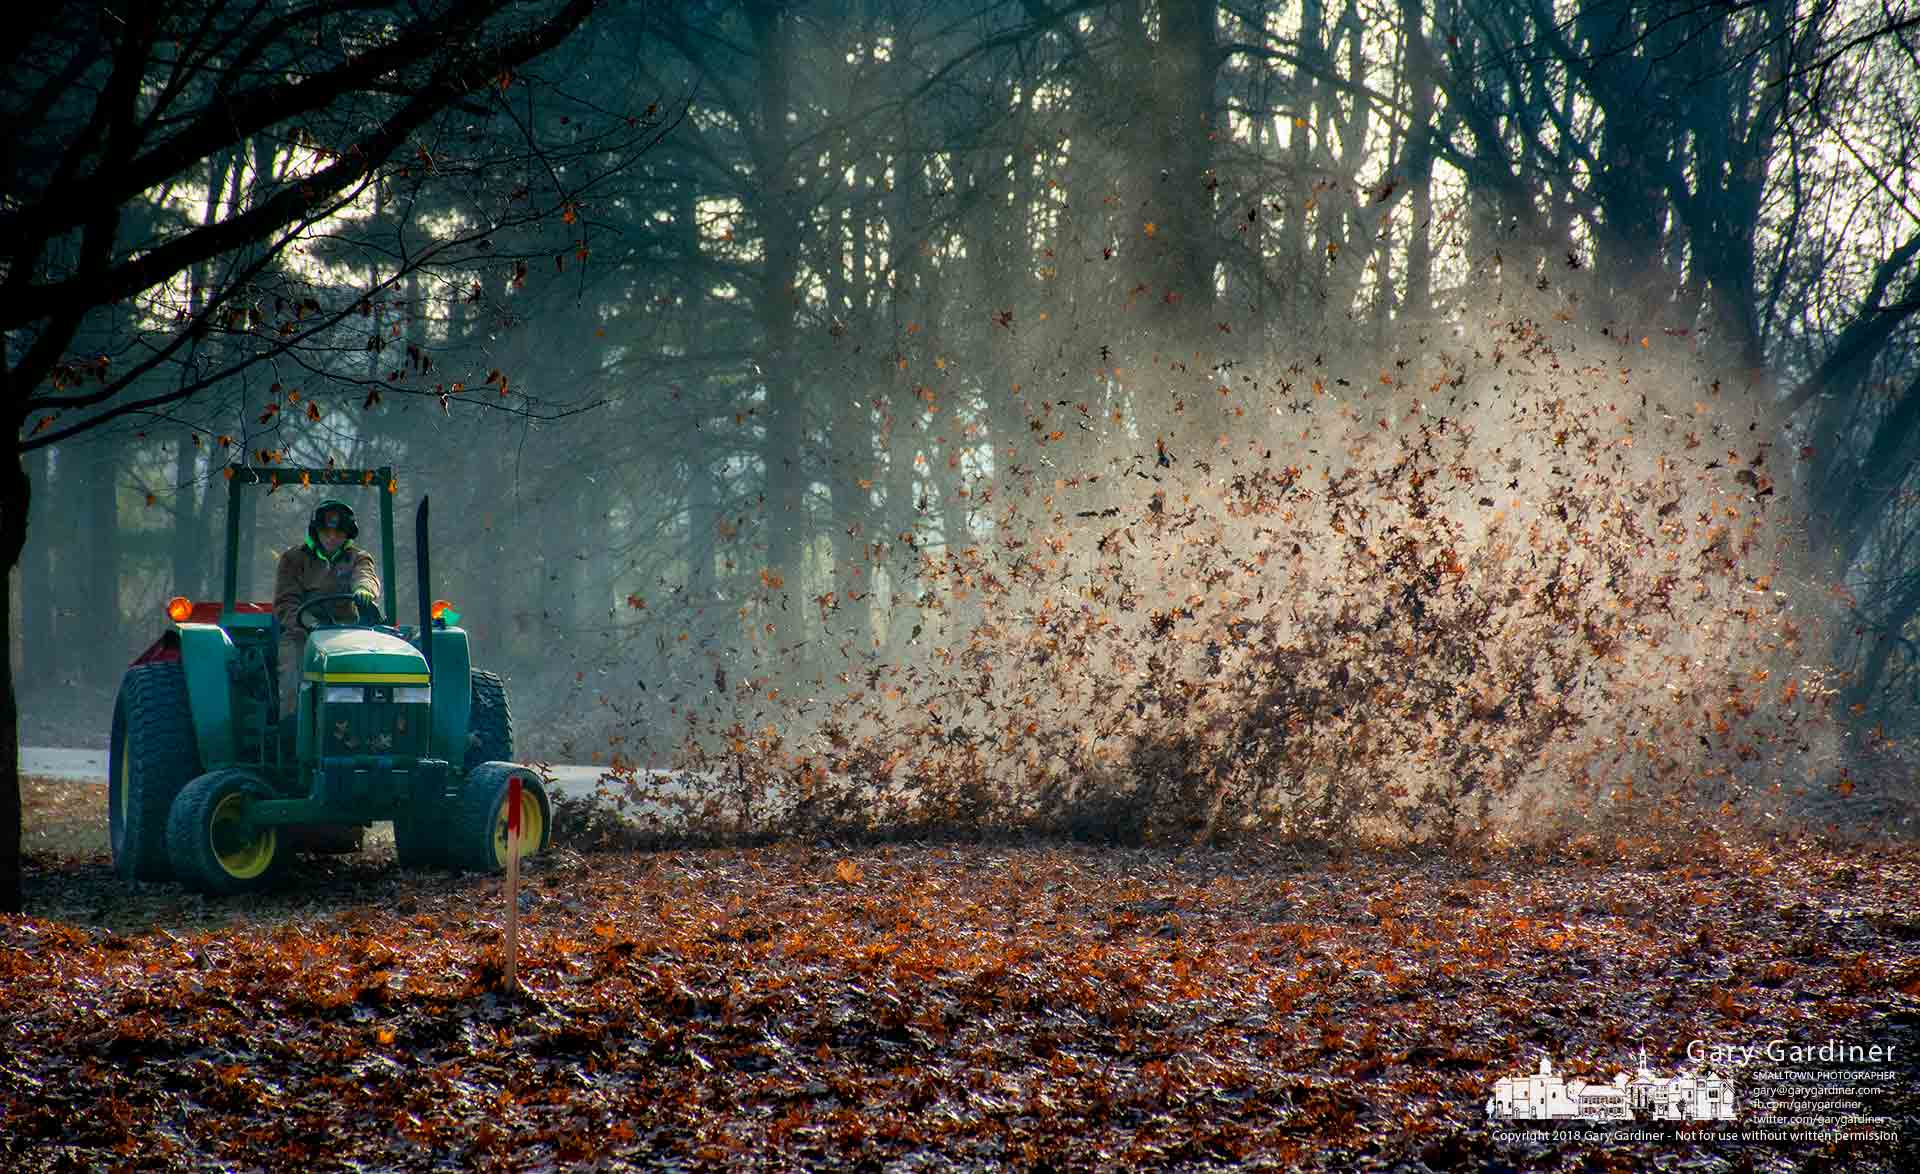 A Metro Parks worker clears leaves from a section of Sharon Woods with a large blower pulled behind a tractor. My Final Photo for Dec. 11, 2018.